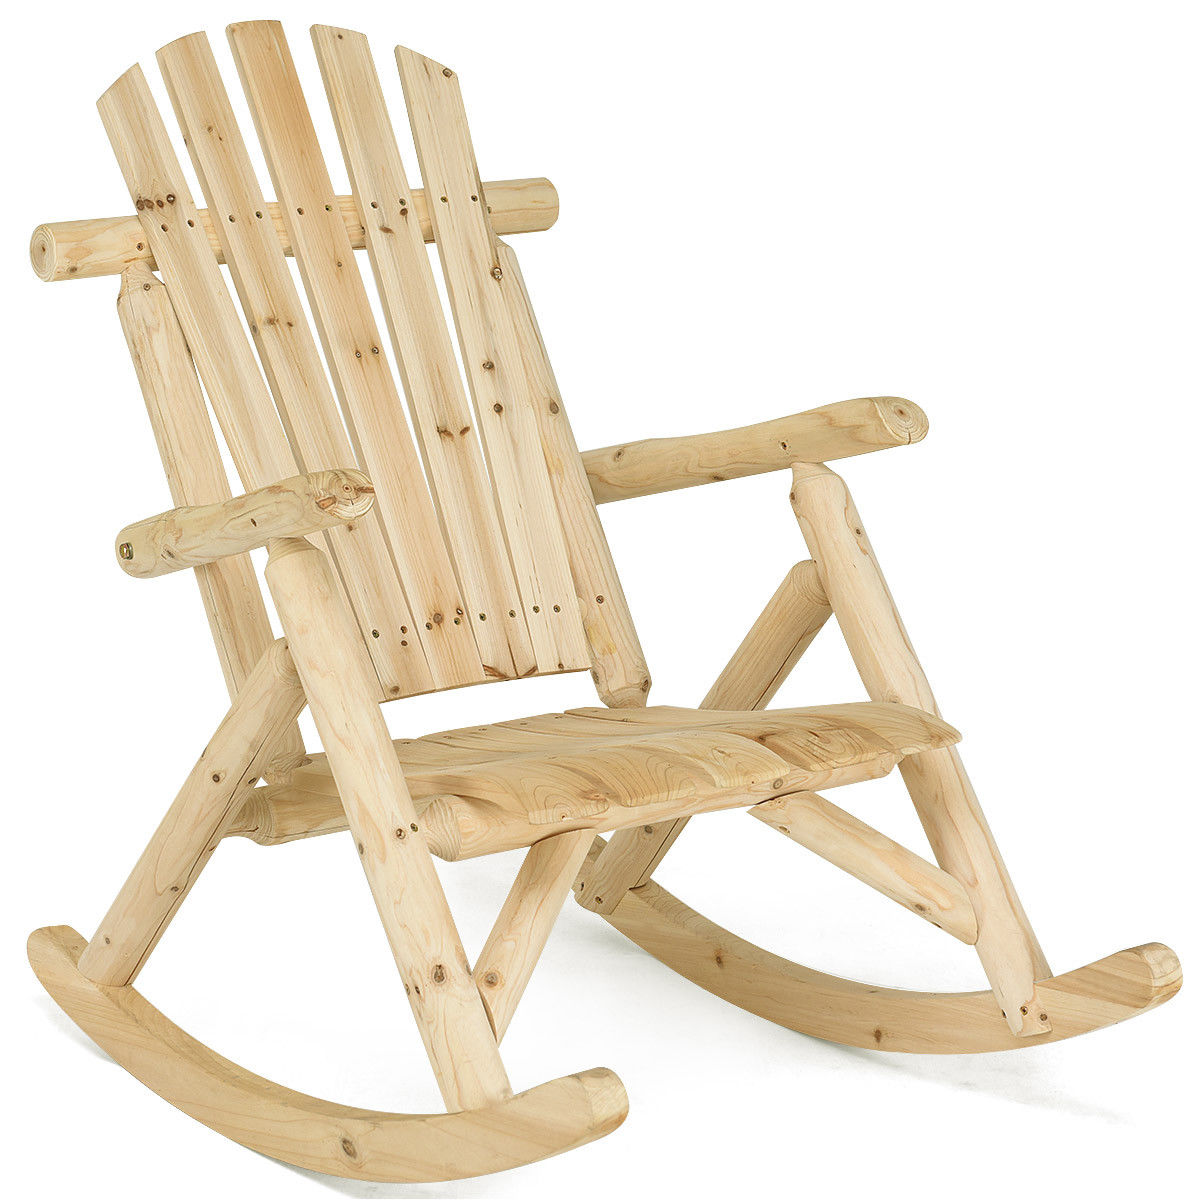 Costway Log Rocking Chair Wood Single Porch Rocker Lounge Patio Deck Furniture Natural